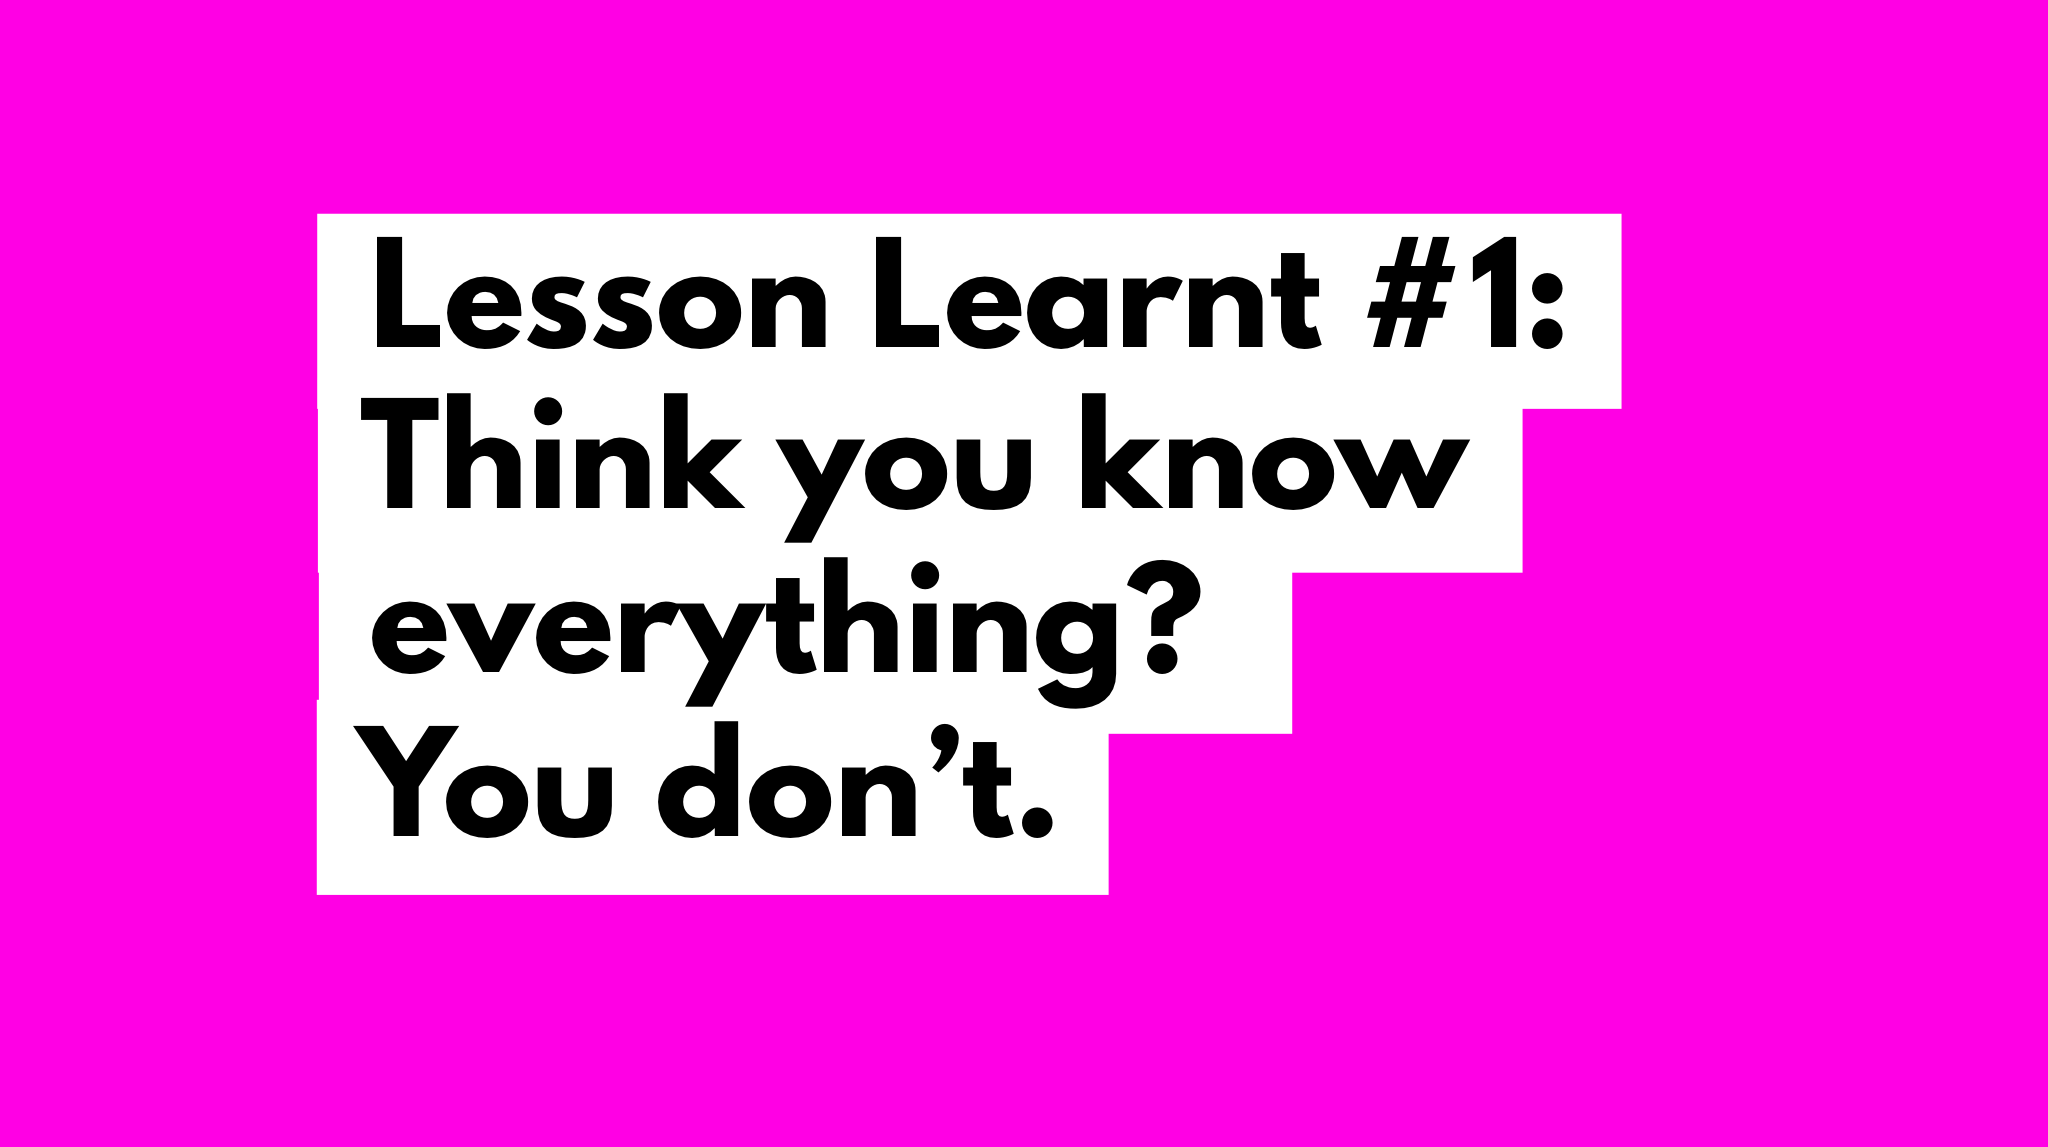 Lessons learnt #1: Think you know everything? You don't.